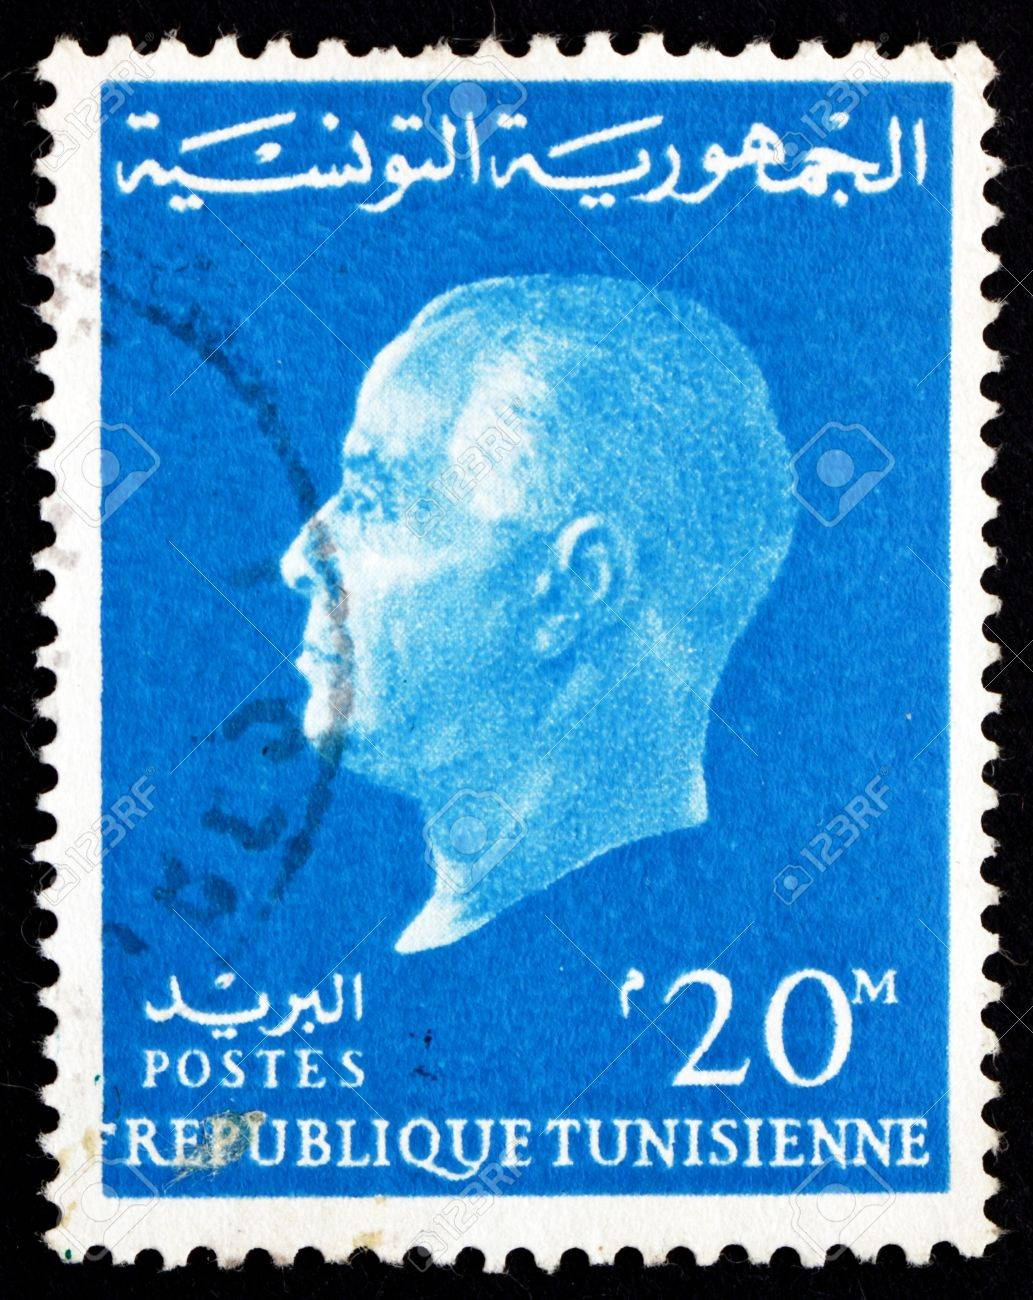 TUNISIA - CIRCA 1962: a stamp printed in Tunisia shows Habib Bourguiba, 1st President of the Republic of Tunisia, circa 1962 Stock Photo - 17393040